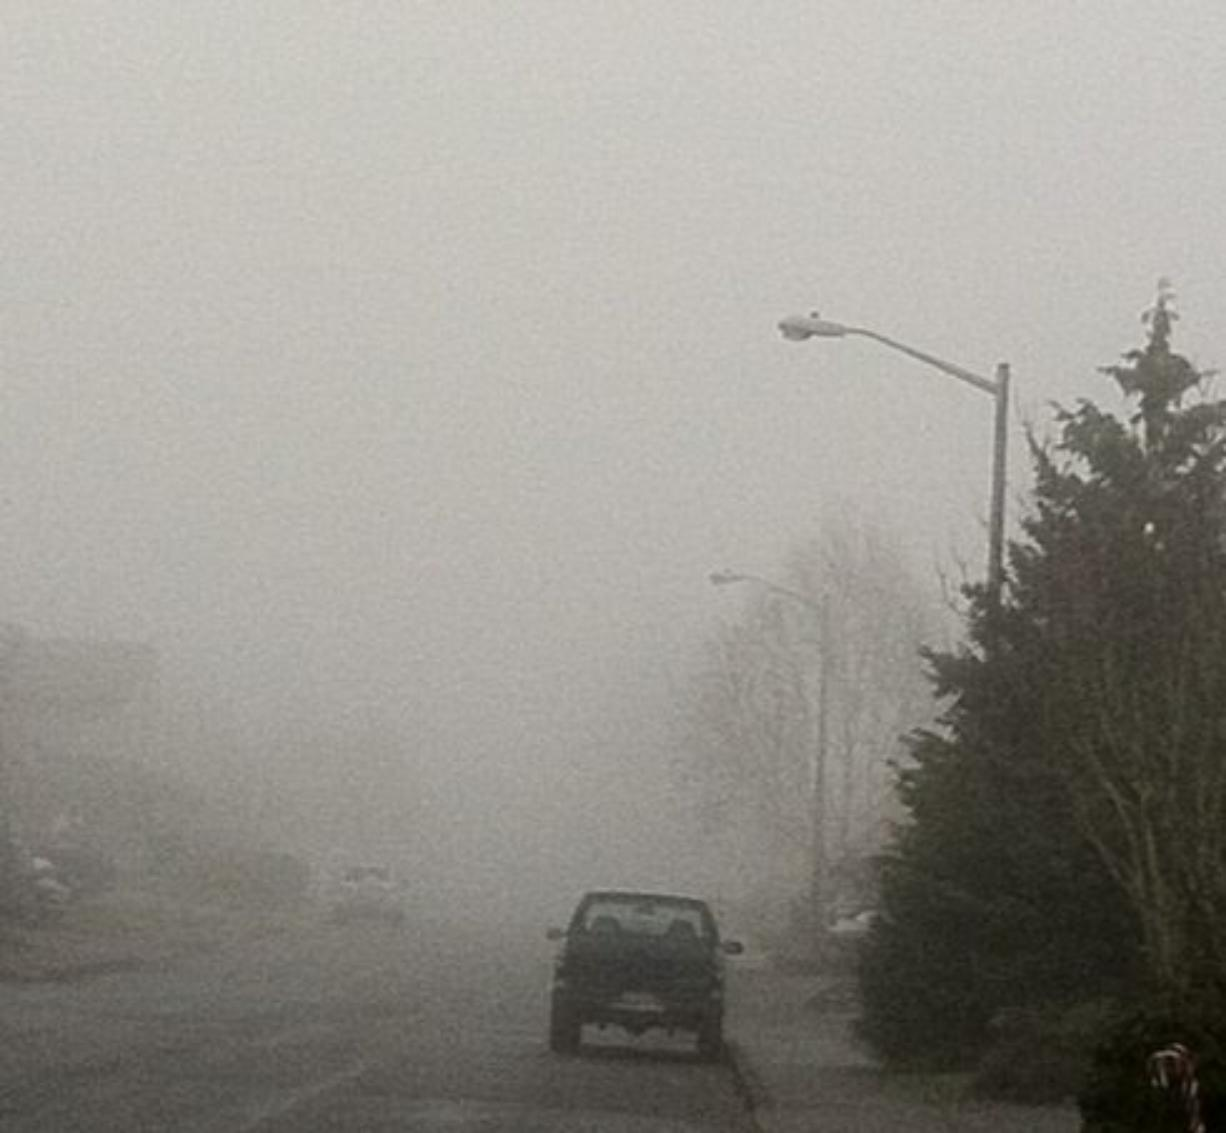 Fog persisted in parts of Clark County Friday.